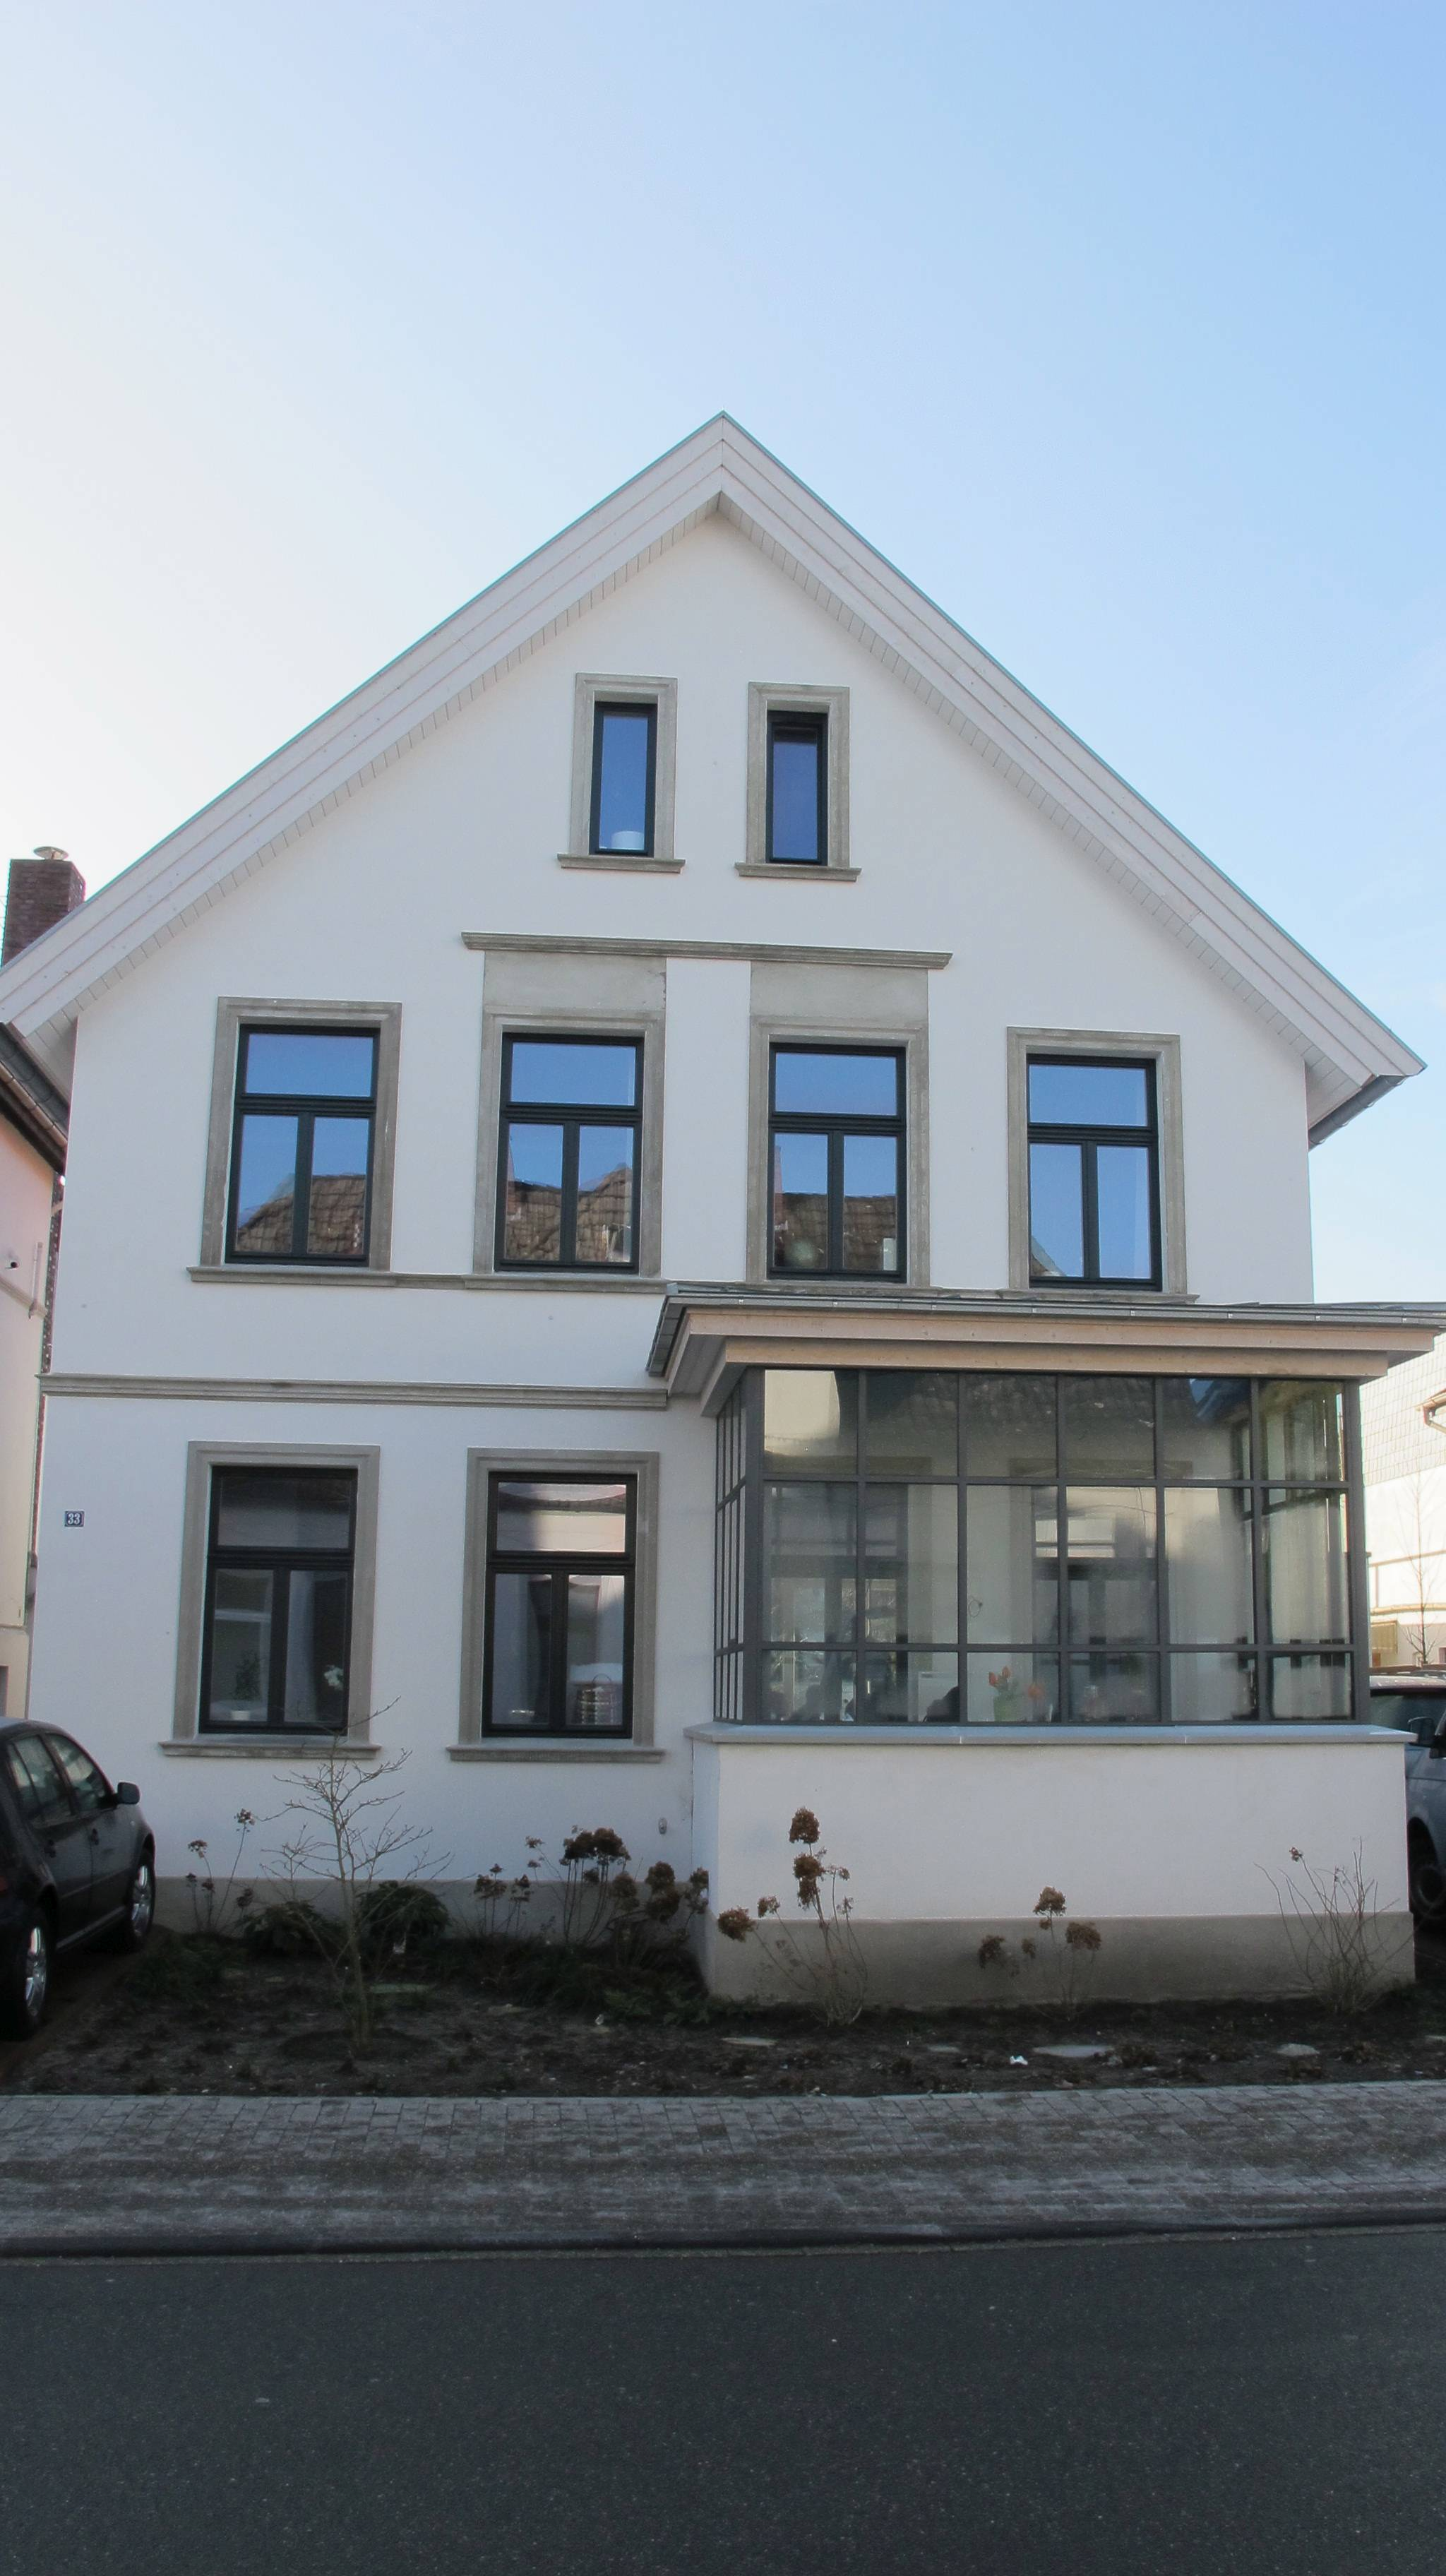 Oldenburger_Hundehütte_Stadthaus_Holzfenster_Fecon_Nordwest